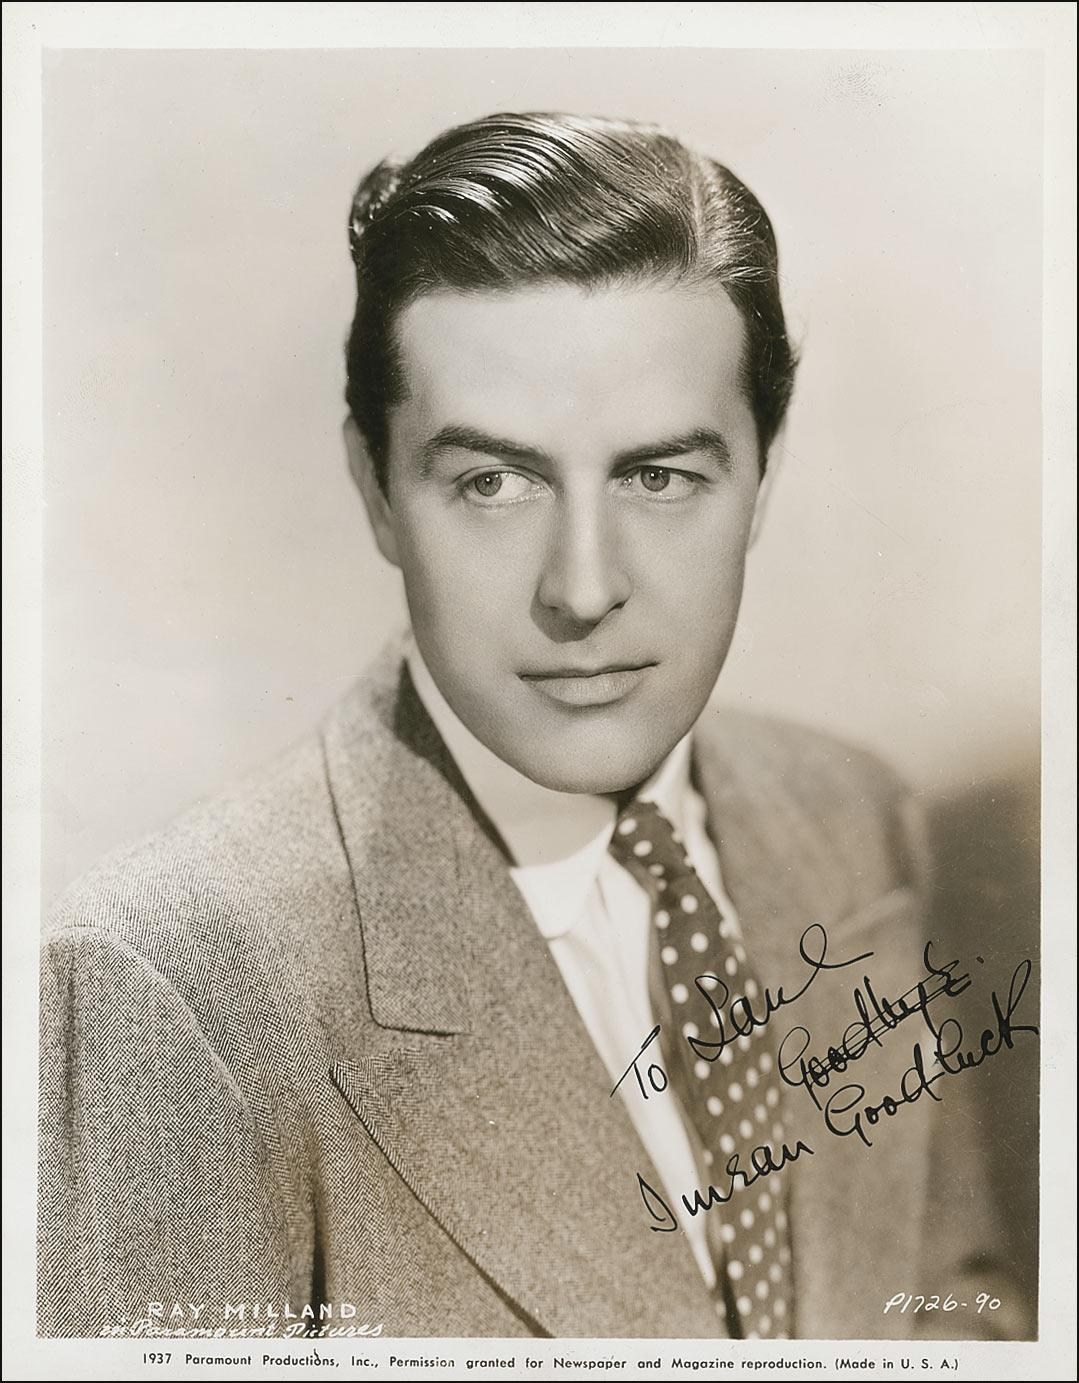 ray milland moviesray milland lost weekend, ray milland, ray milland movies, ray milland grace kelly, ray milland height, ray milland james stewart, ray milland imdb, ray milland columbo, ray milland actor, ray milland movies list, ray milland films, ray milland daughter, ray milland star wars, ray milland band, ray milland wife, ray milland net worth, ray milland youtube, ray milland biografia, ray milland interview, ray milland son